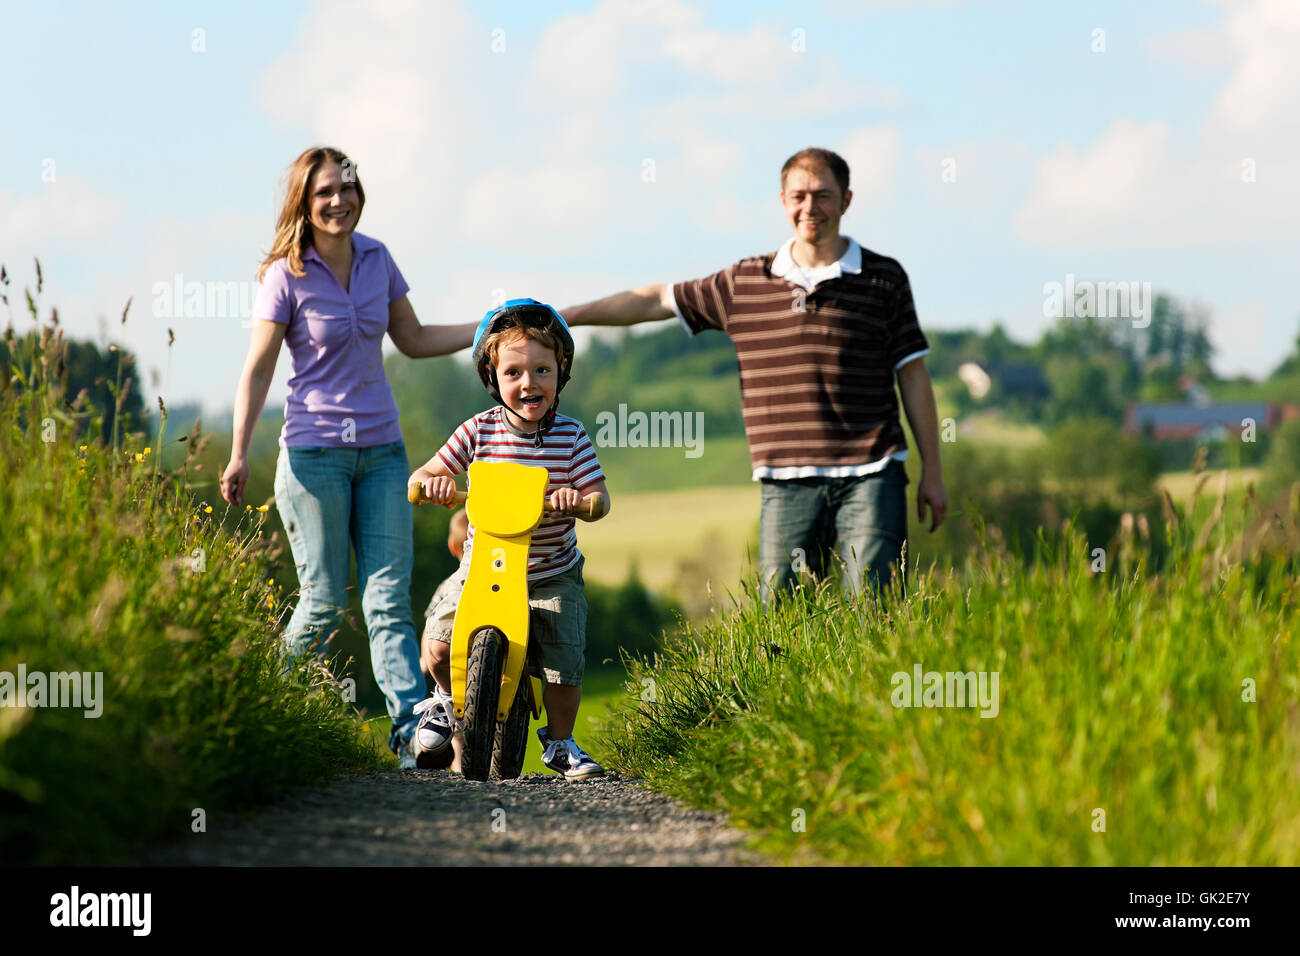 walk go going - Stock Image